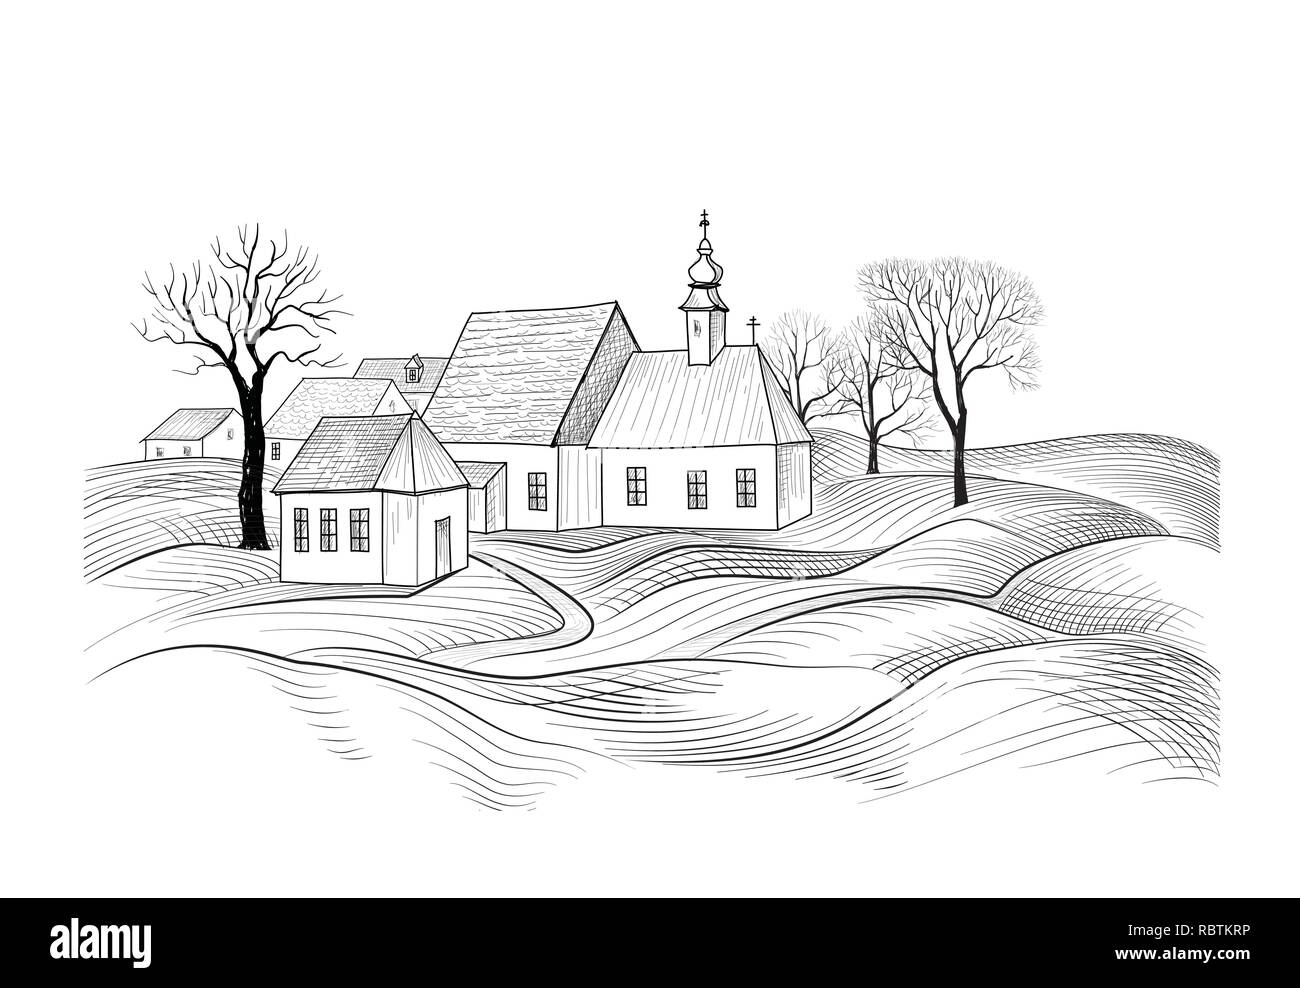 Sketch of house architecture. Country side skyline with perspective of exterior house - Stock Image